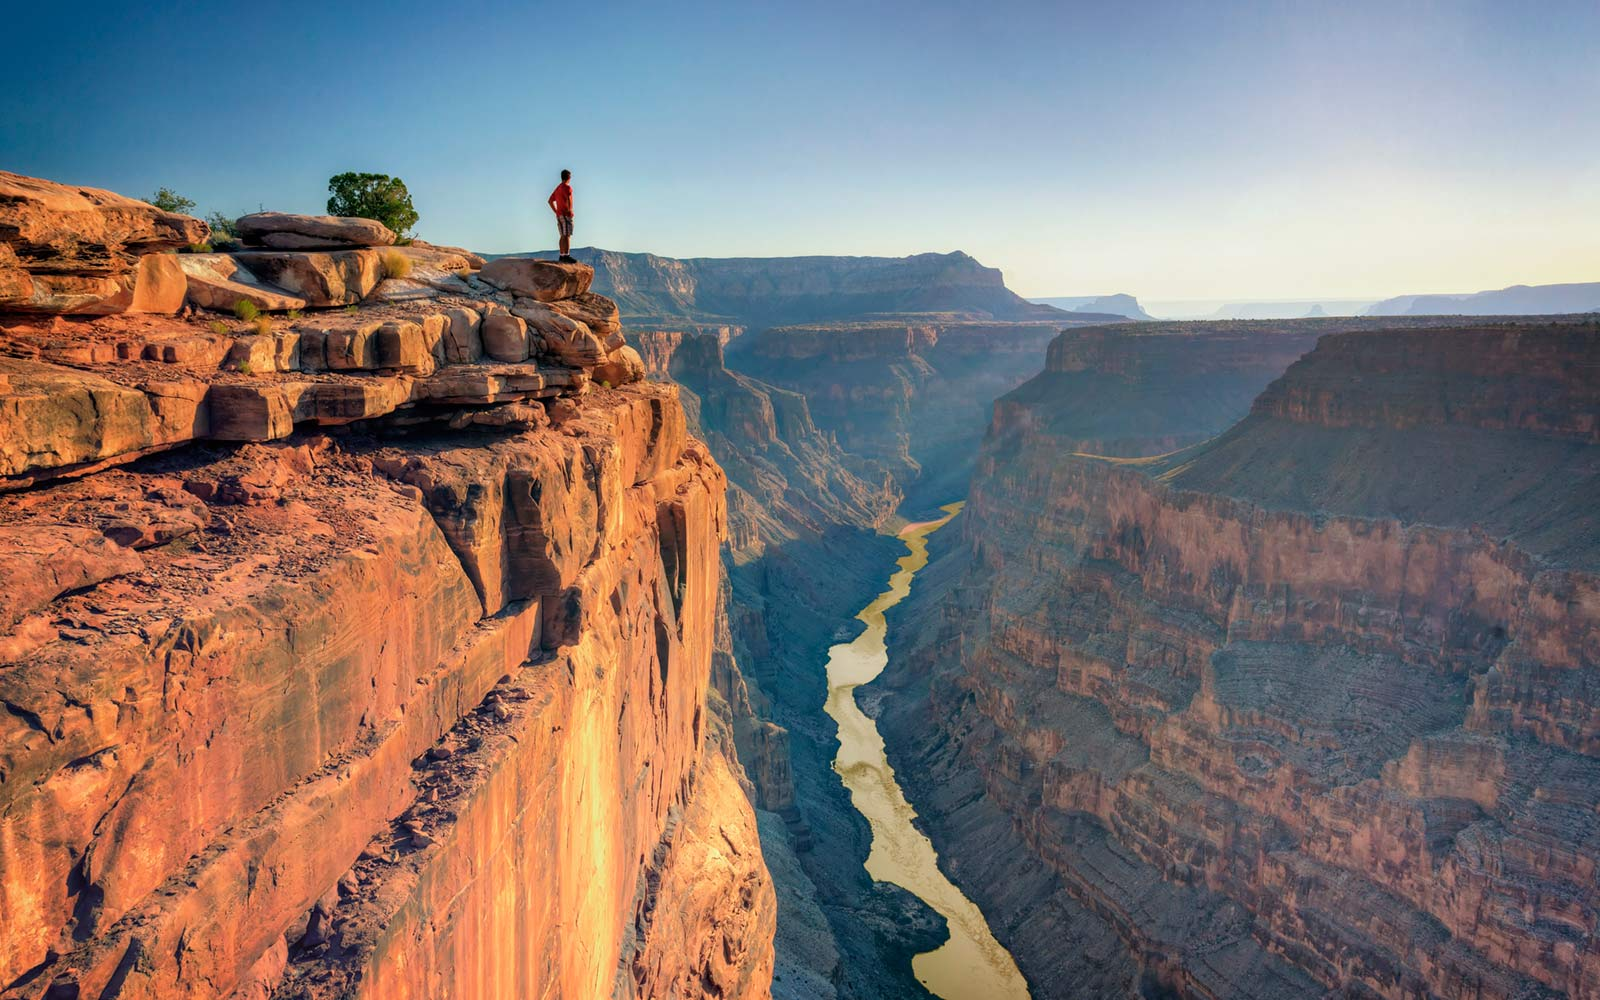 Grand Canyon National Park, Toroweap Overlook, North Rim